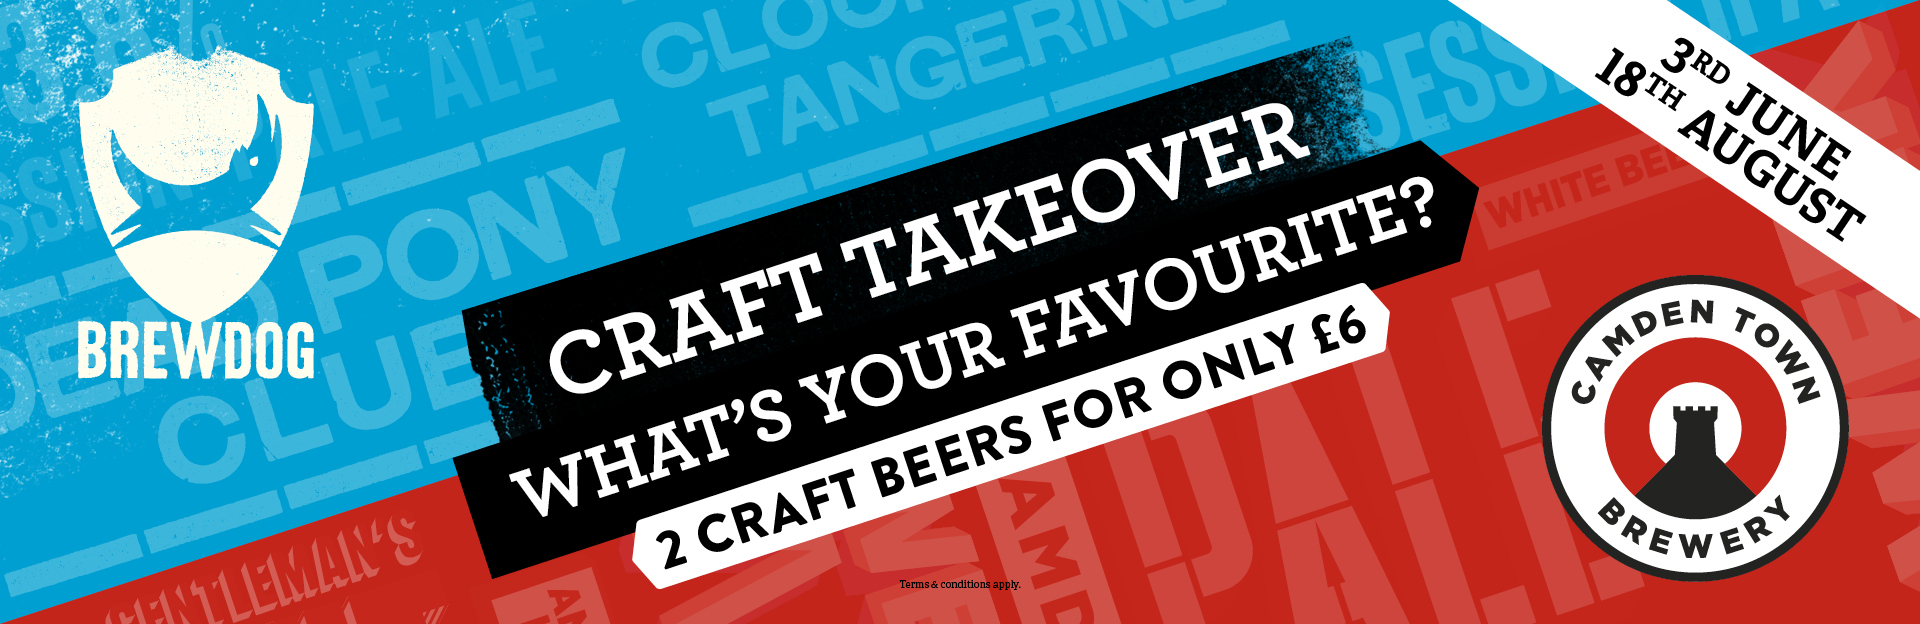 Craft Takeover at The George Eliot